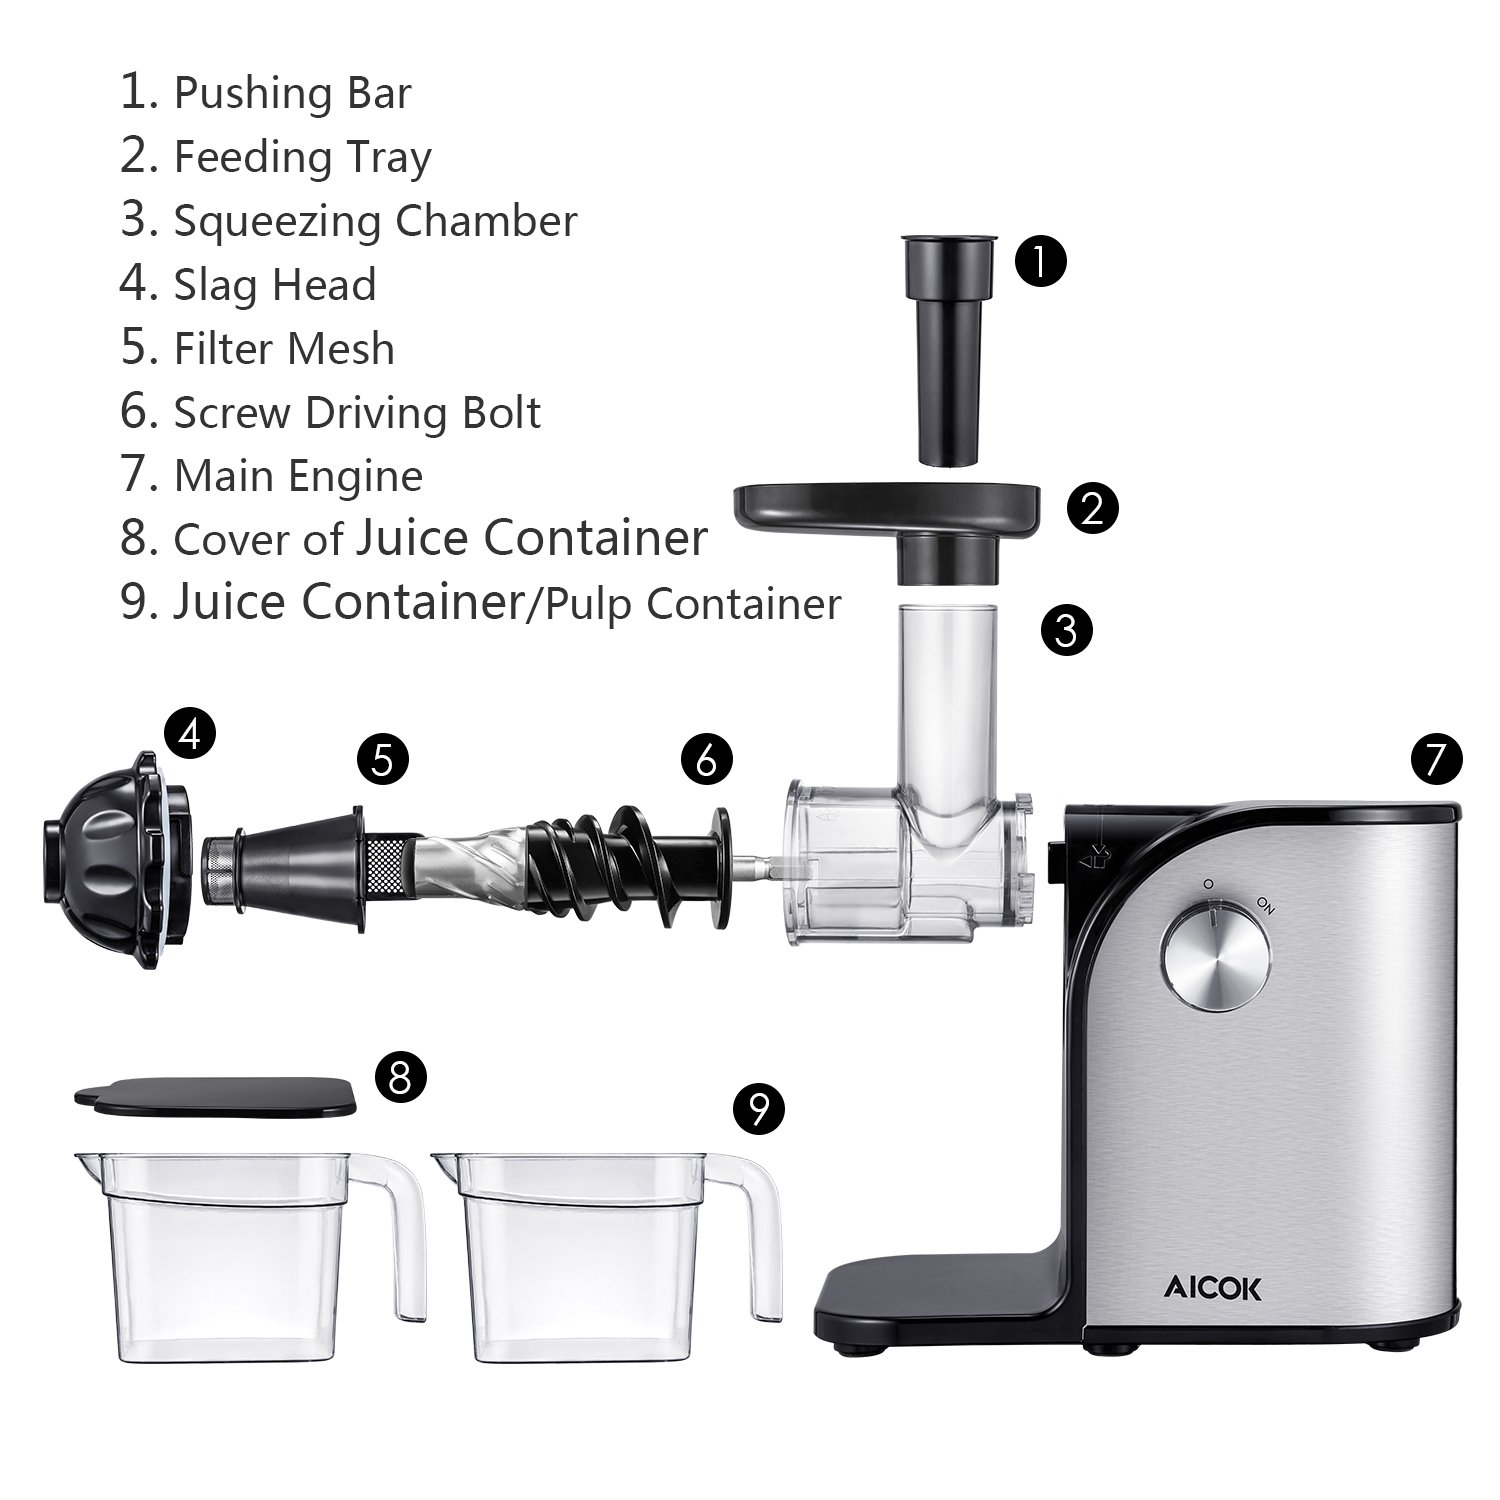 Aicok Slow Masticating juicer, Cold Press Juice Extractor, Stainless Steel, Quiet Motor, High Nutrient Fruit and Vegetable Juice, Black by AICOK (Image #8)